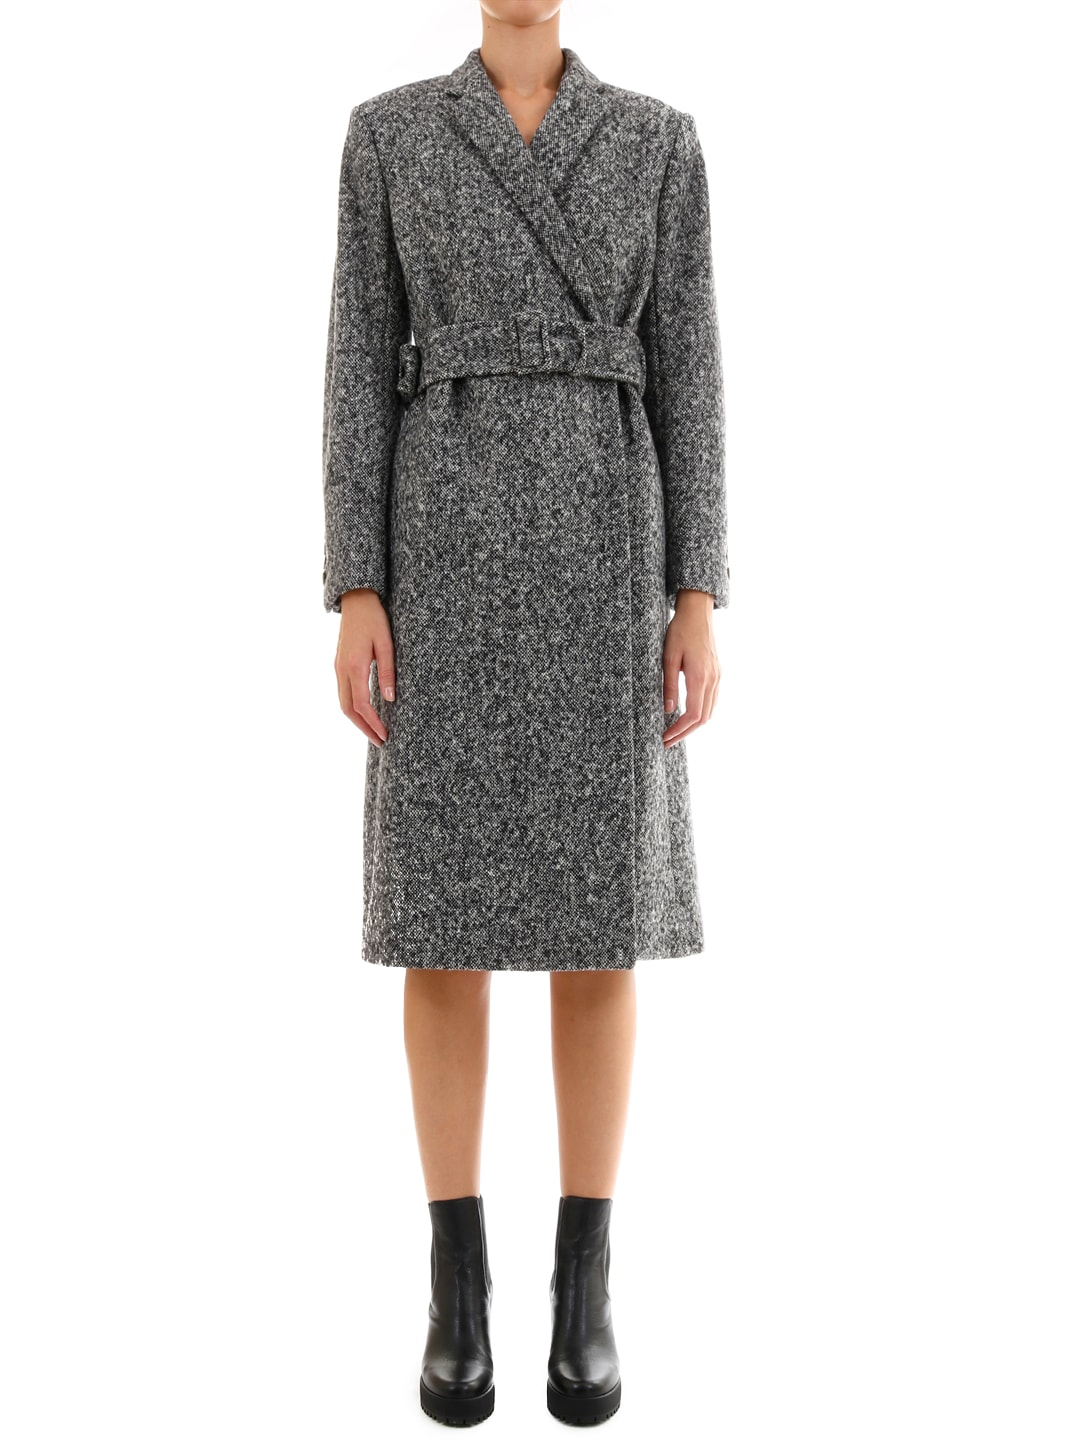 Stella McCartney Gray Wool Coat